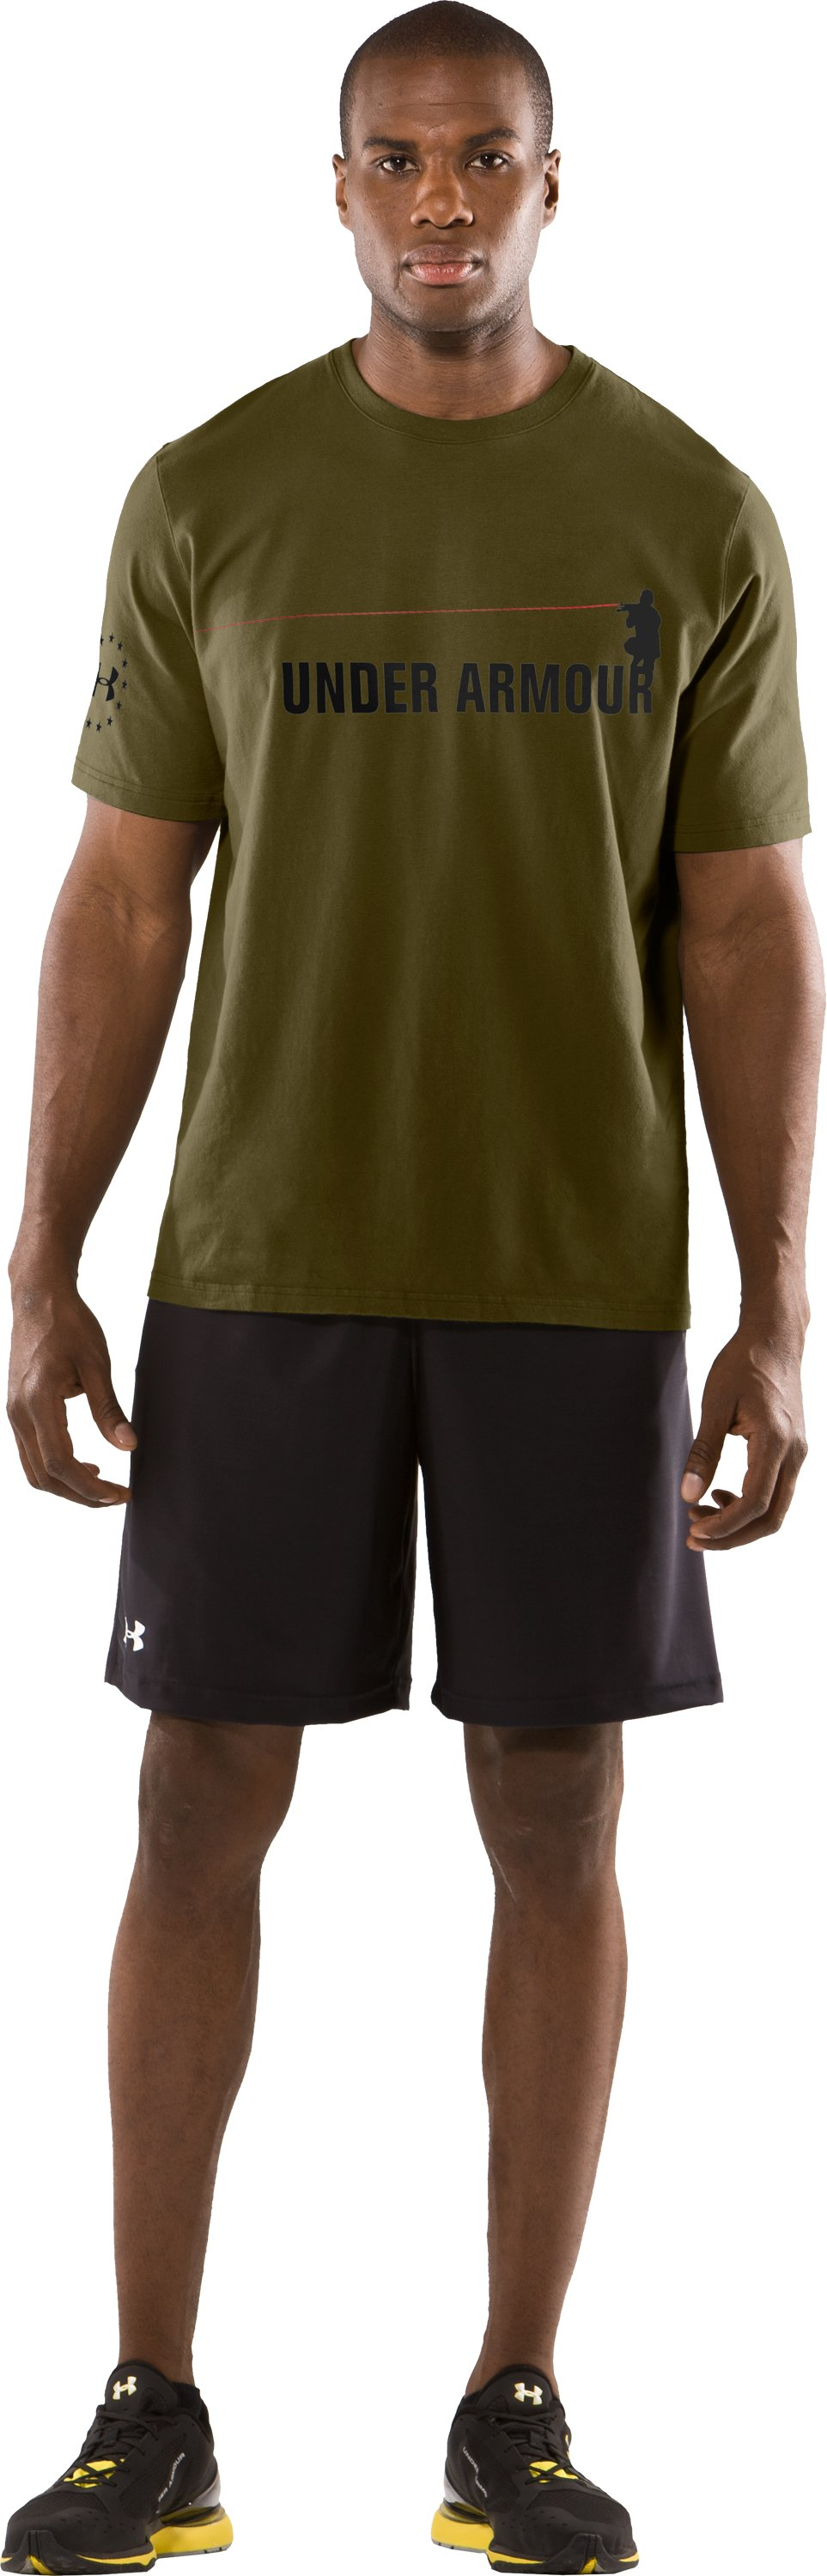 Men's UA Laser Sight Short Sleeve T-Shirt, Marine OD Green, Front